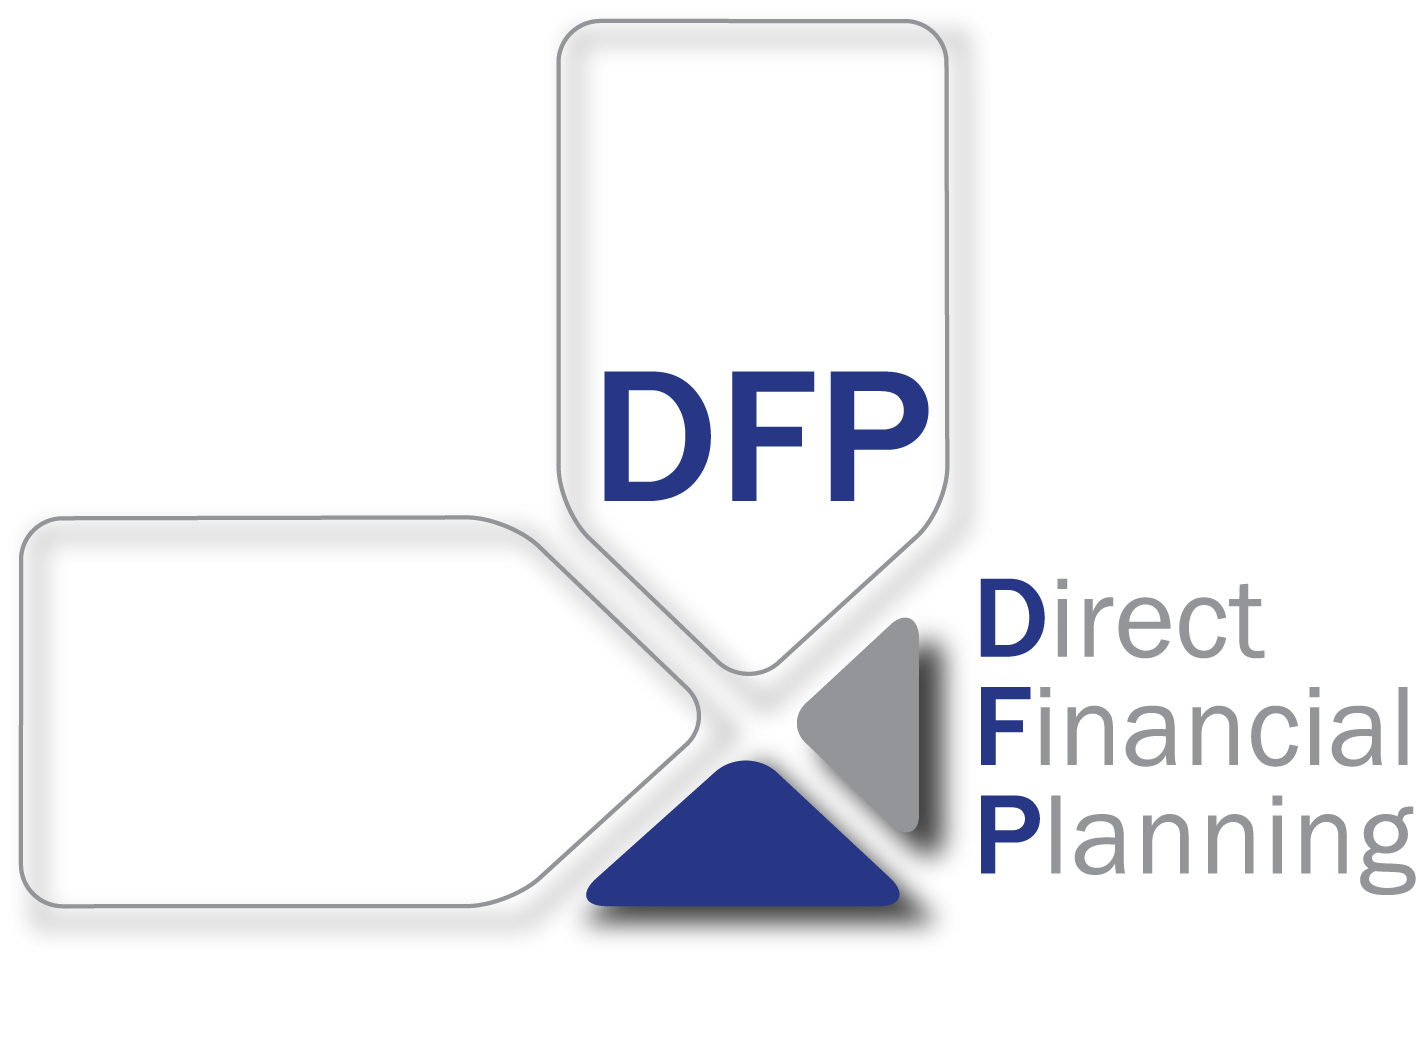 Direct Financial Planning Uk Ltd